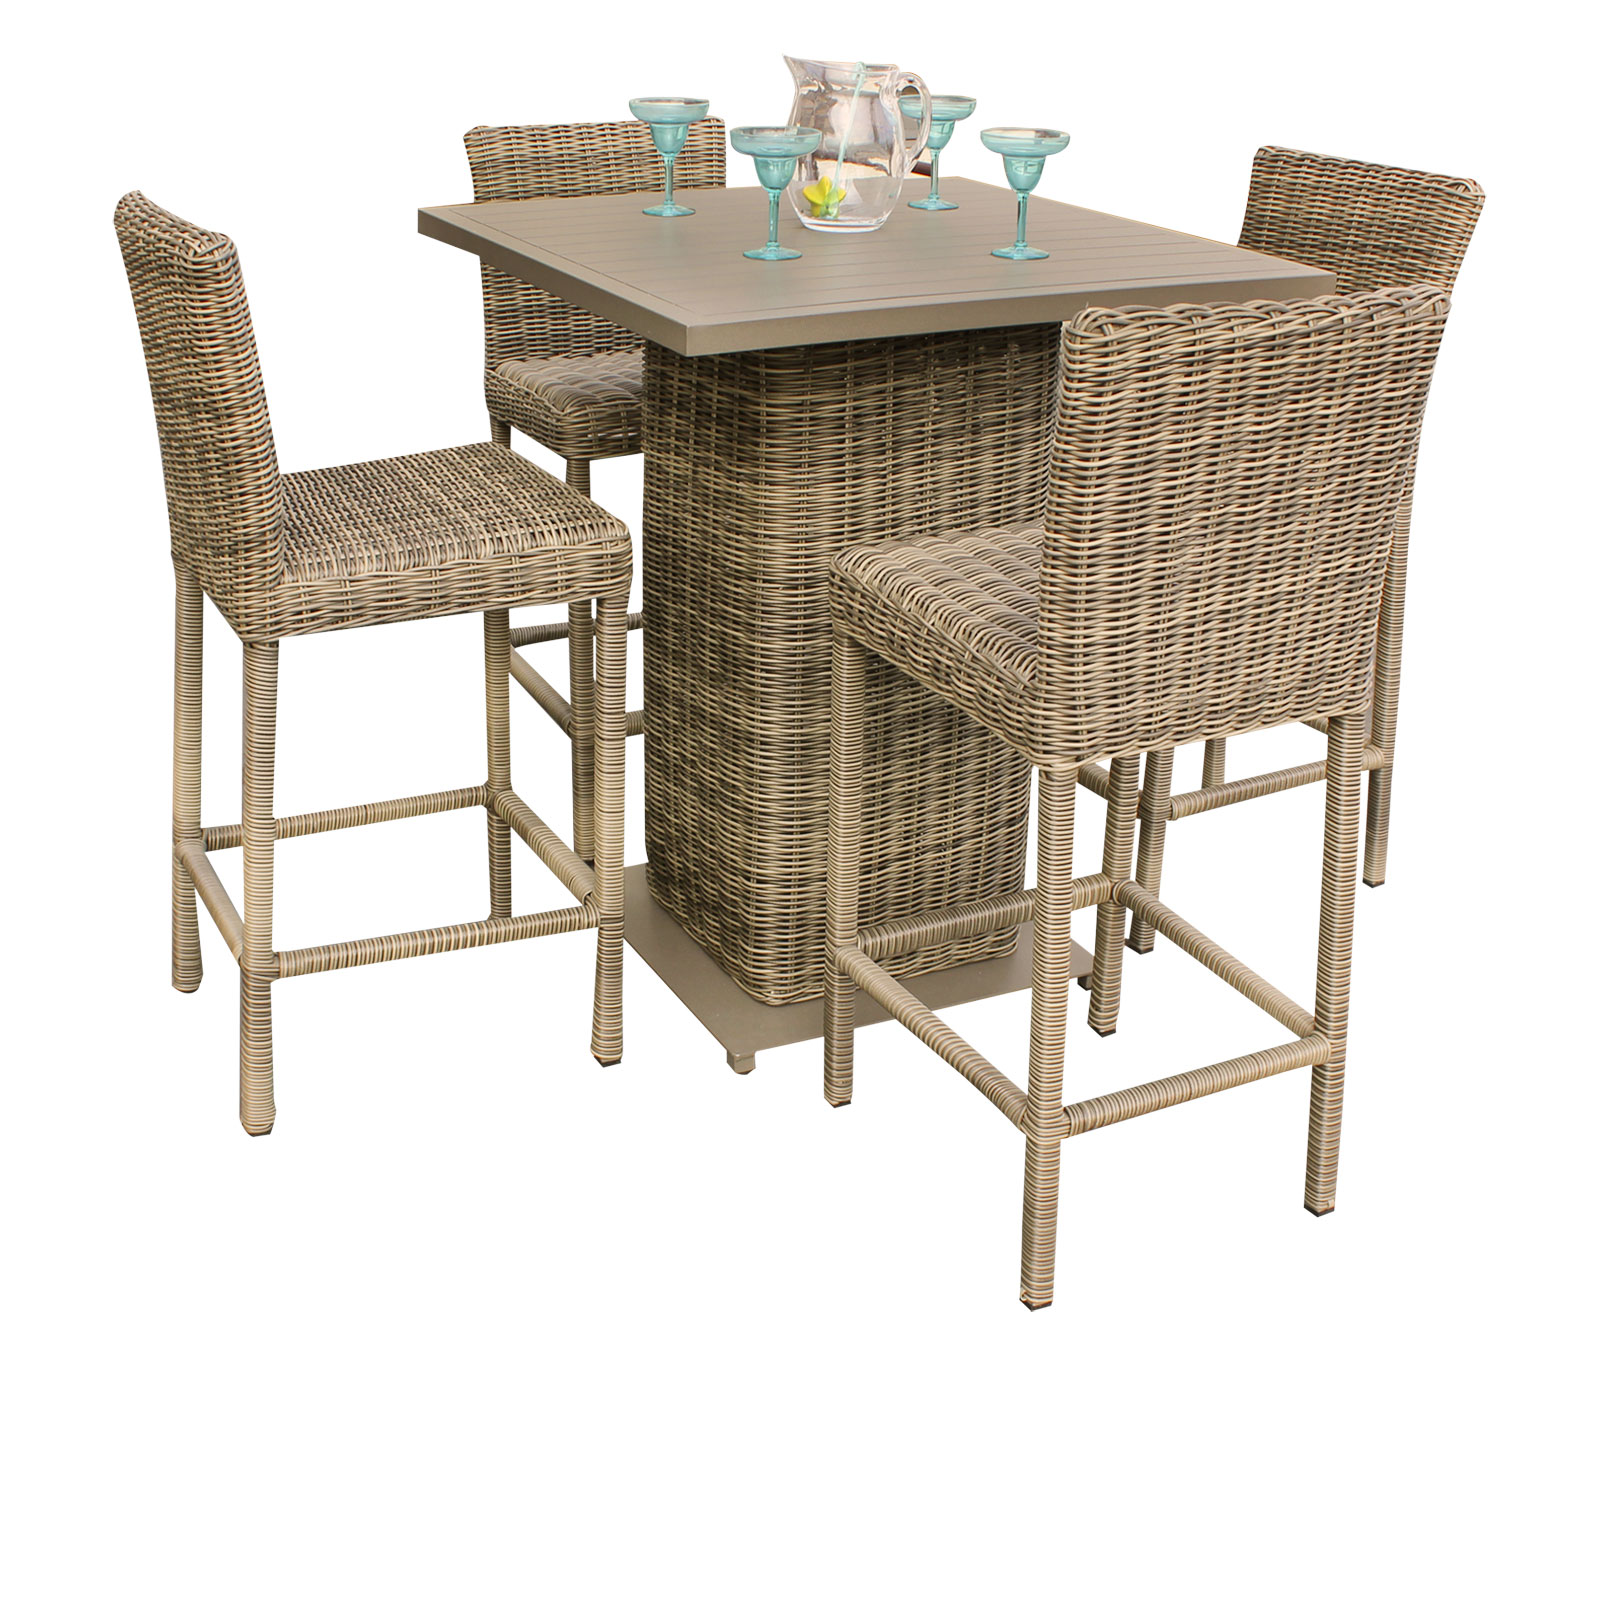 Royal Pub Table Set With Bar Stools 5 Piece Outdoor Wicker Patio Furniture by TK Classics